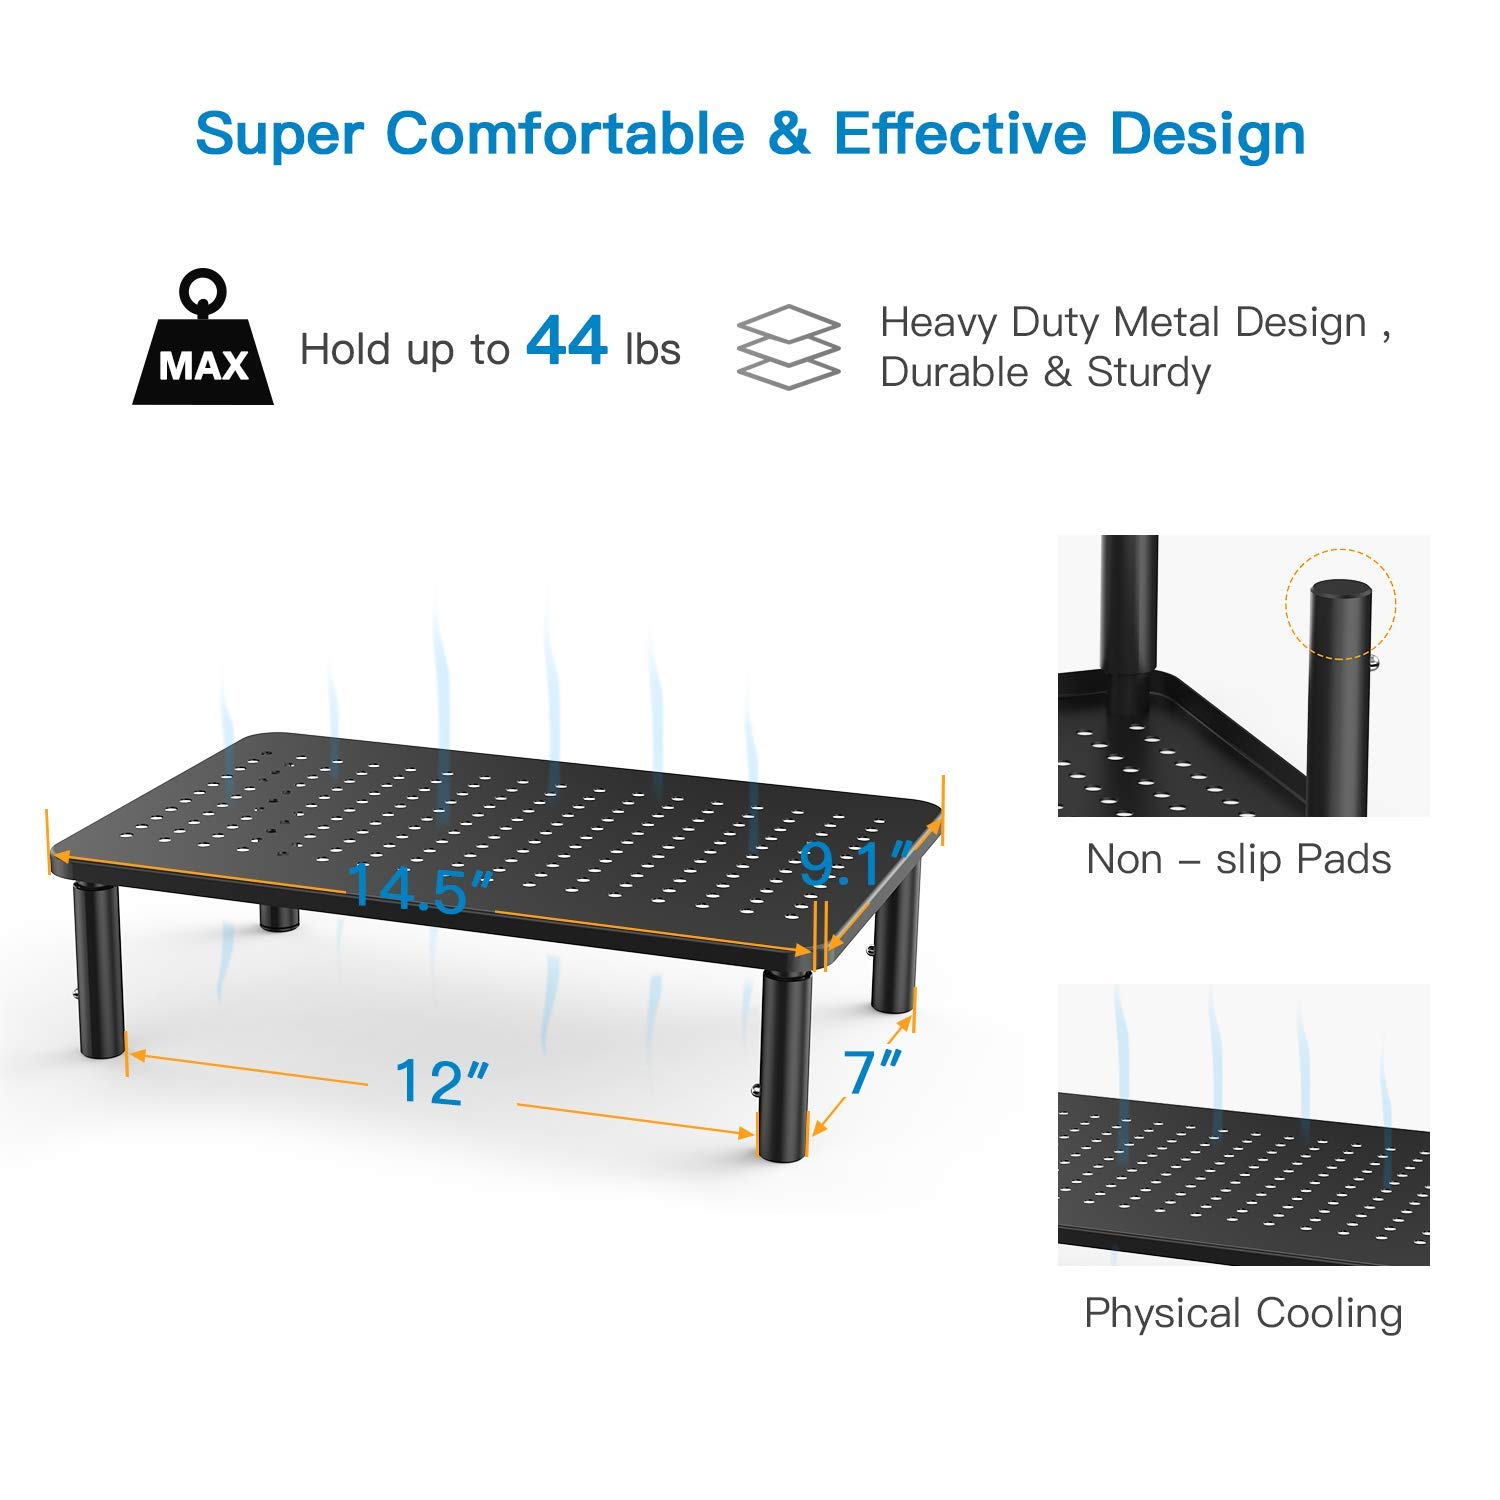 Monitor Stand Riser - 3 Height Adjustable Monitor Stand for Laptop, Computer, iMac, PC, Printer, Desktop Ergonomic Metal Monitor Riser Stand with Mesh Platform for Airflow by HUANUO (2 Pack) by HUANUO (Image #4)